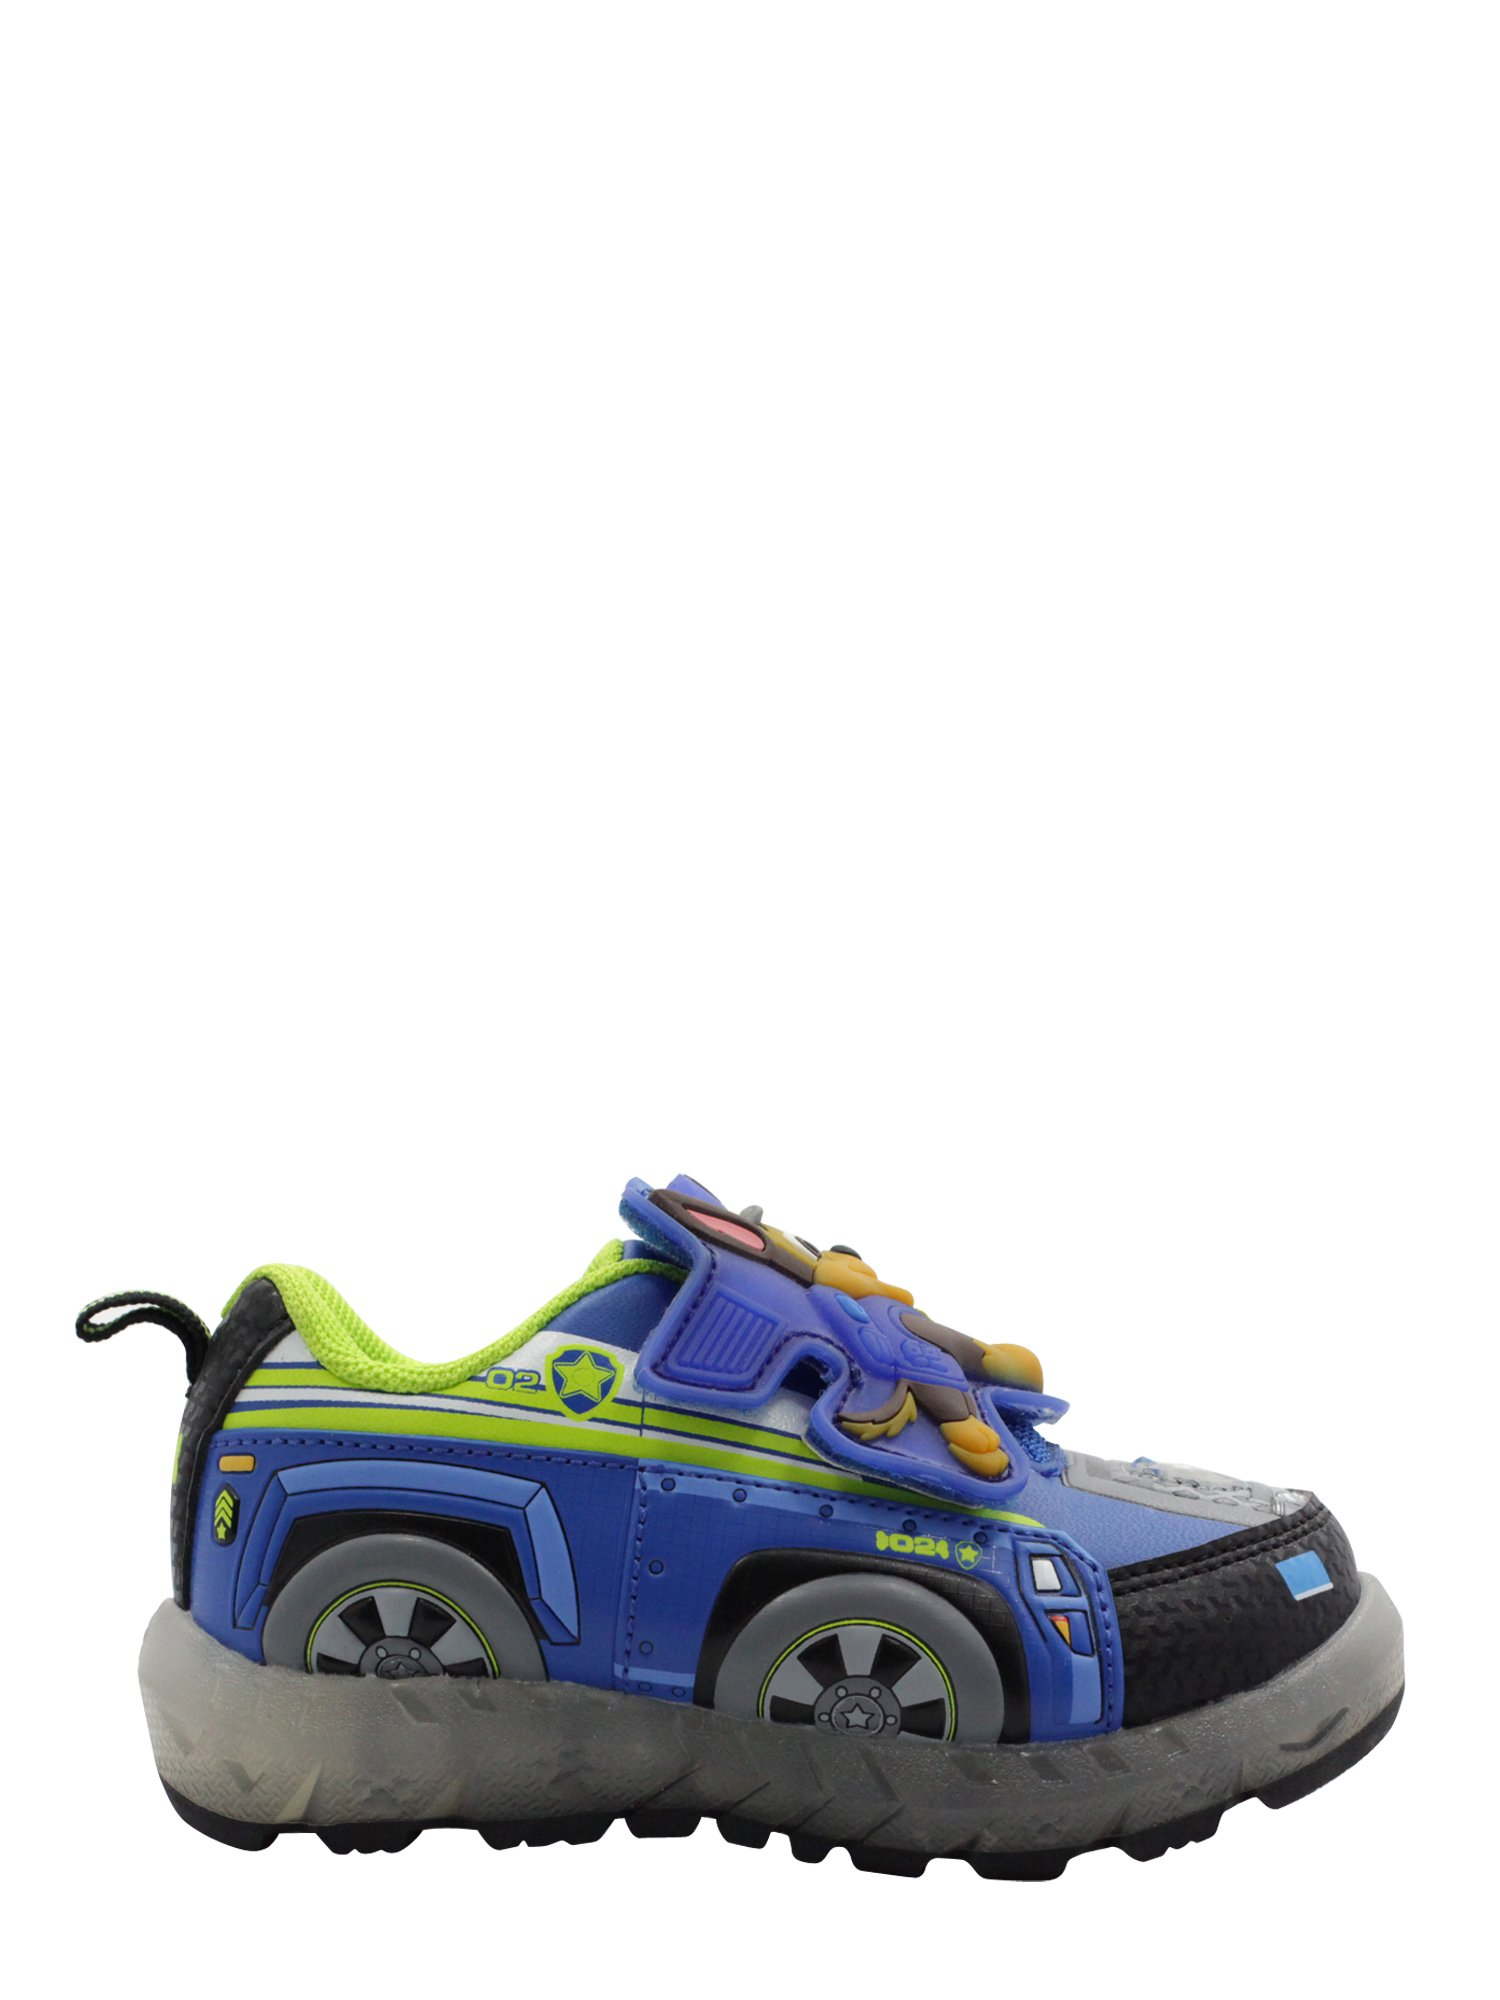 Paw Patrol Toddler Boys' Athletic Sneaker